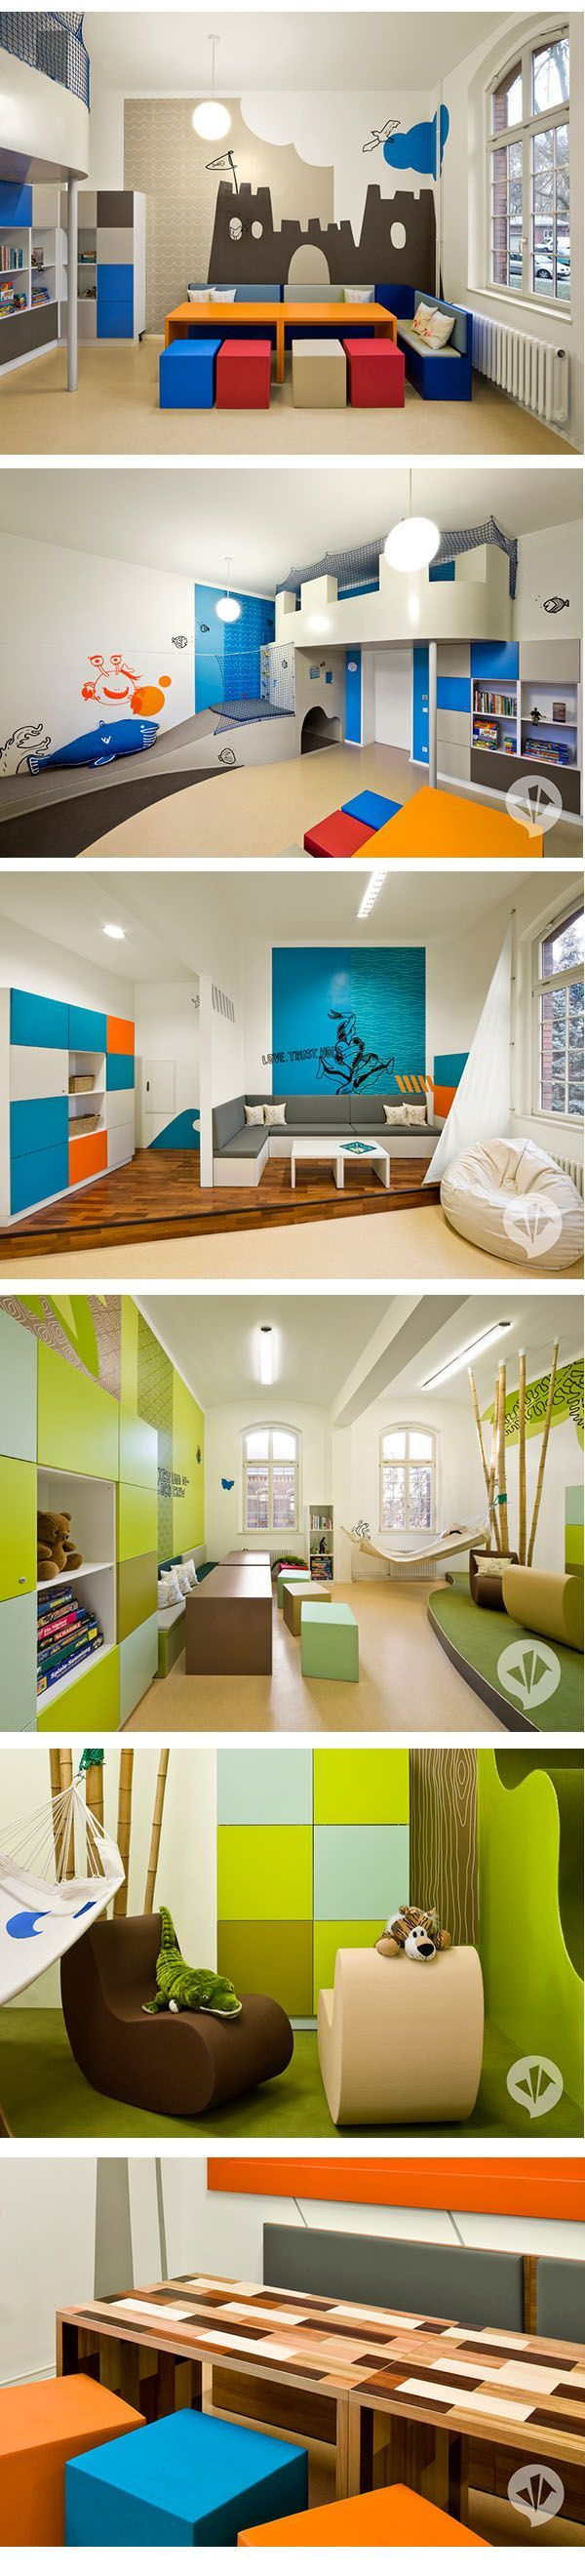 Kids psychiatry ward at a german hospital created by dan pearlman